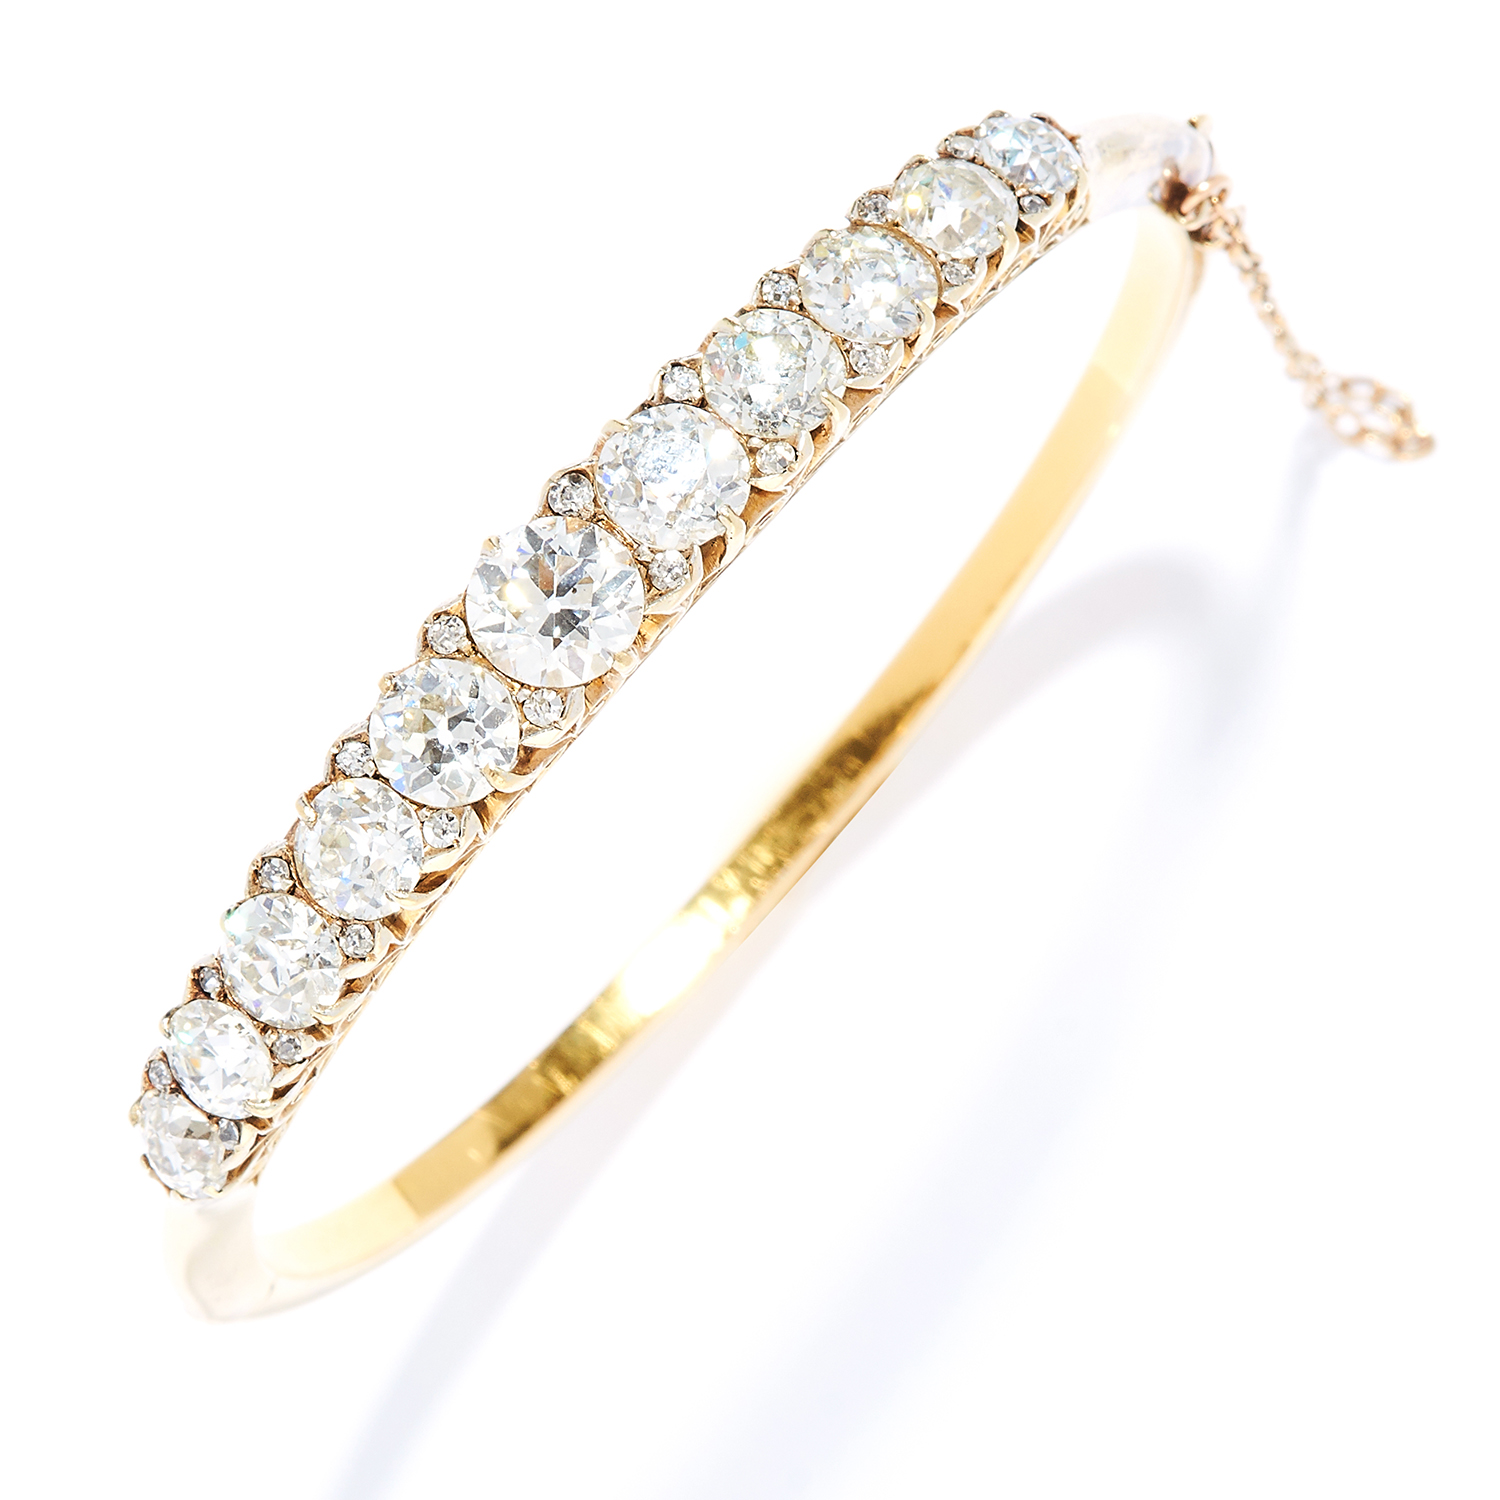 Los 32 - ANTIQUE 10.00 CARAT DIAMOND BANGLE in high carat yellow gold, set with a row of old cut diamonds